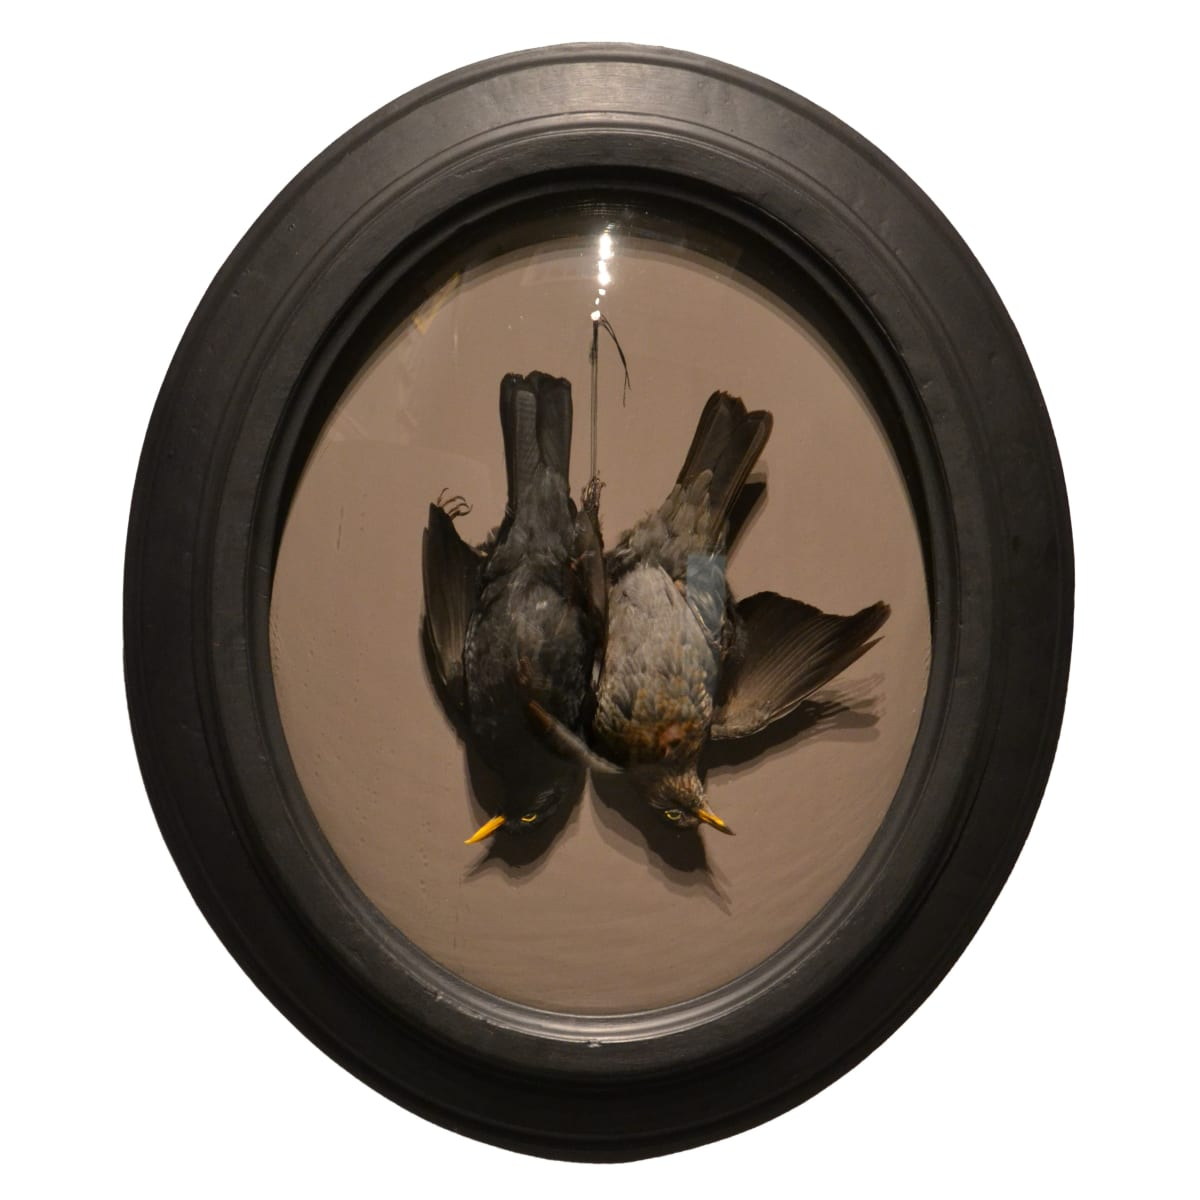 Fiona Dean Till Death Do Us Part, 2019 male and female blackbirds in restored antique frame with domed glass 30 x 26 x 4 cm